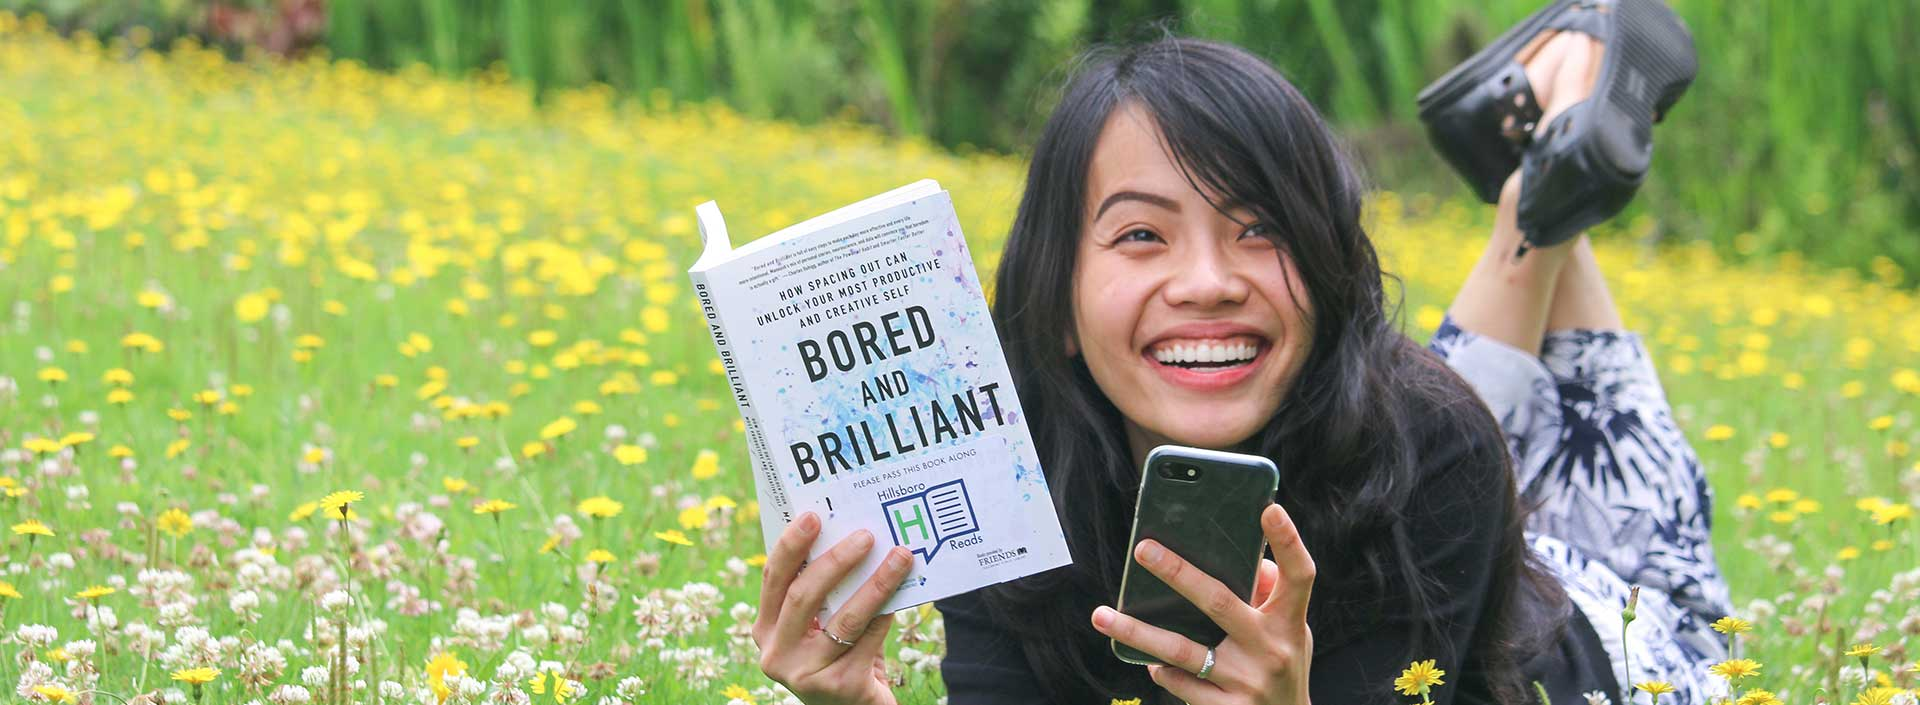 A young woman reads Bored and Brilliant by Manoush Zomorodi and holds a cell phone in a field